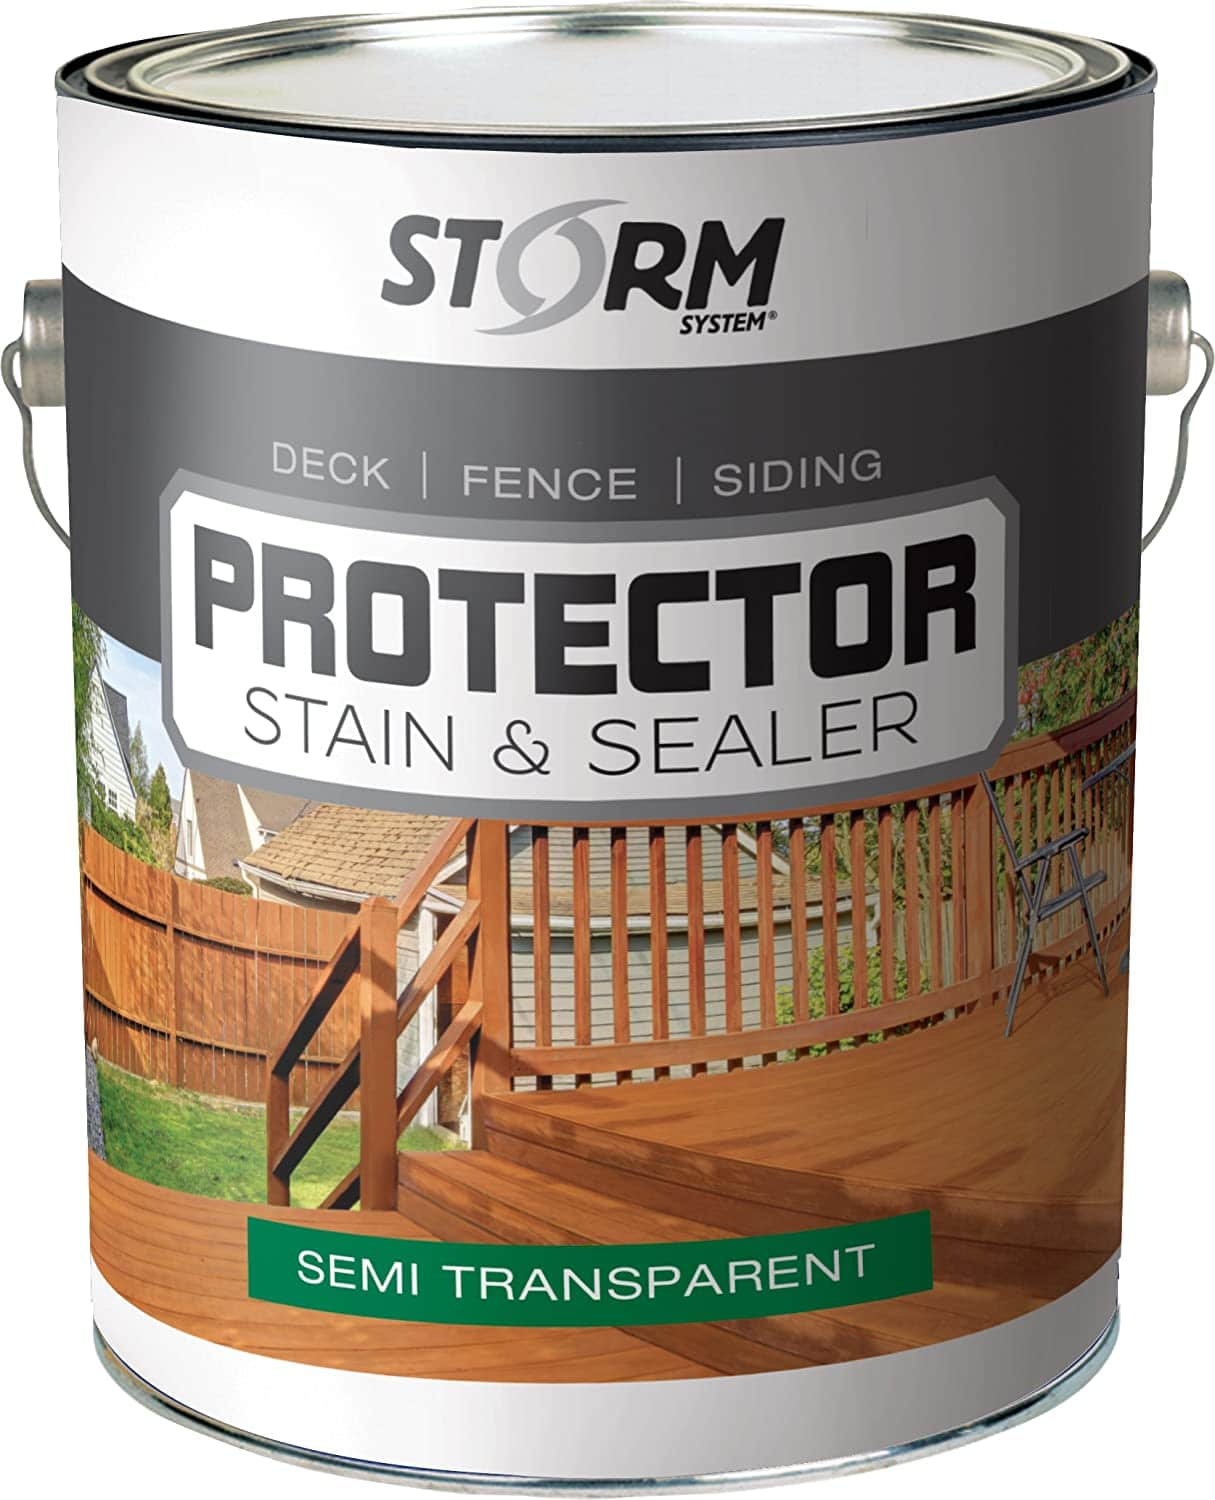 Storm Protector Penetrating Sealer & Stain Protector review